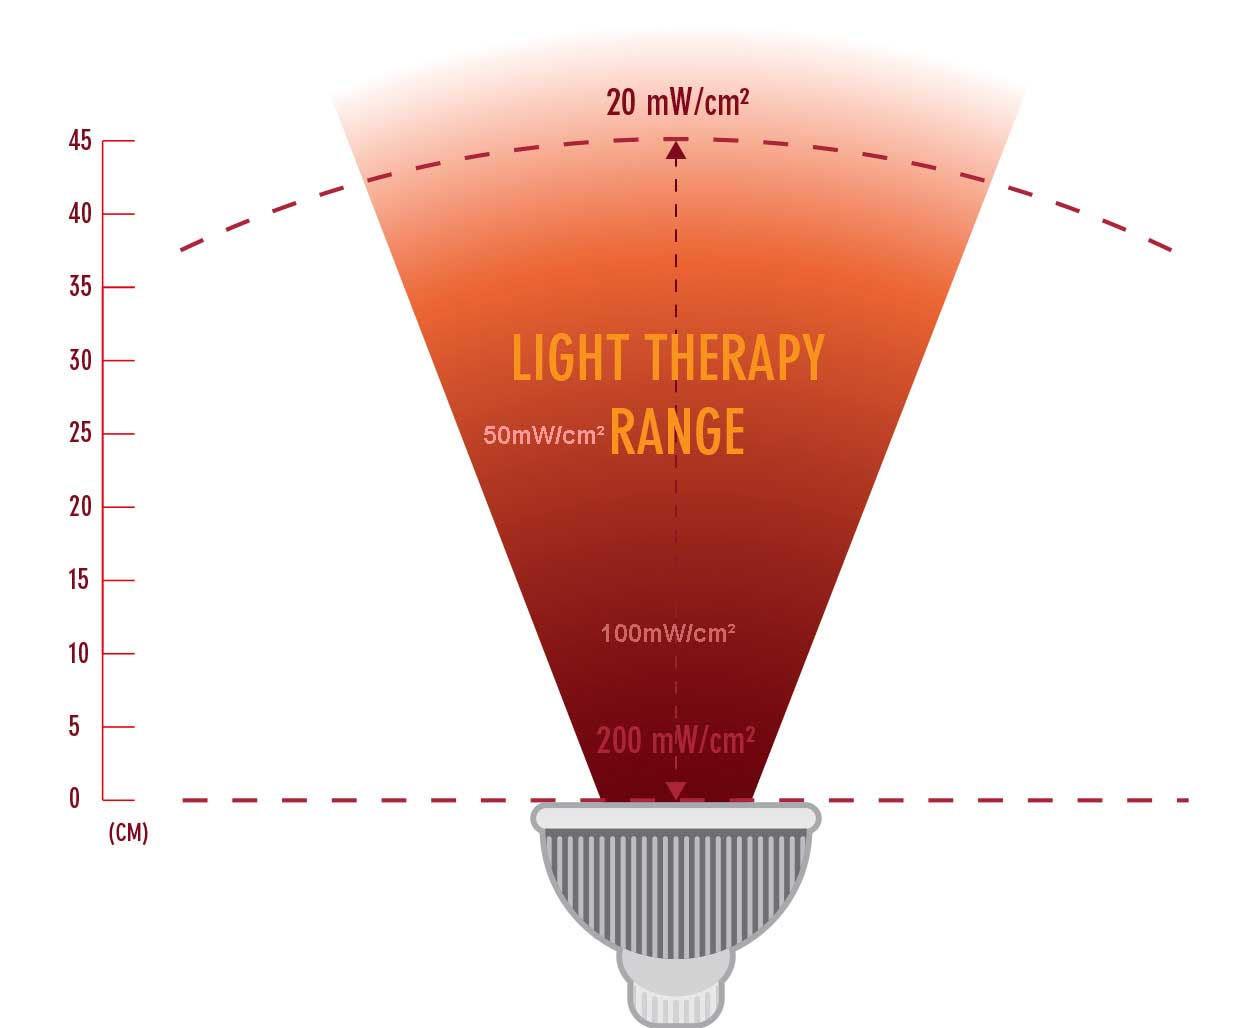 infrared mini light therapy range